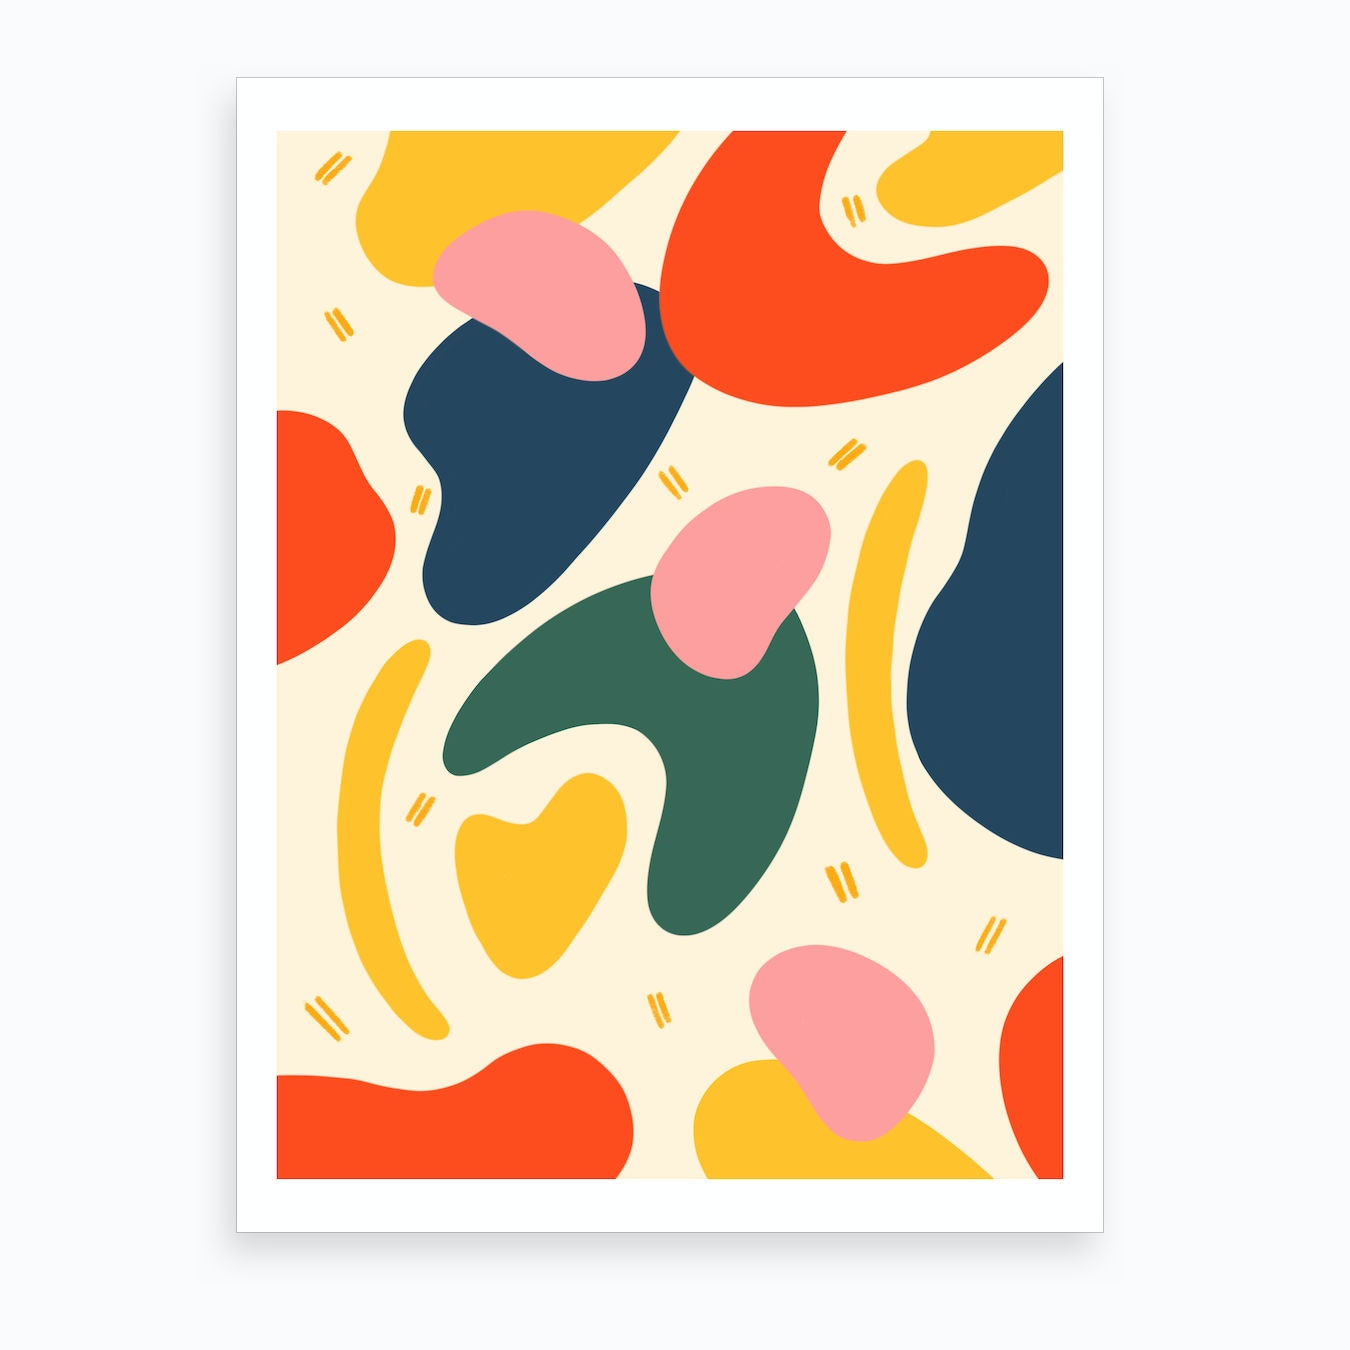 Abstract Shapes Art Print By Niamh Illustrates Fy If you have your own one, just send us the image and we will show it on the. abstract shapes art print